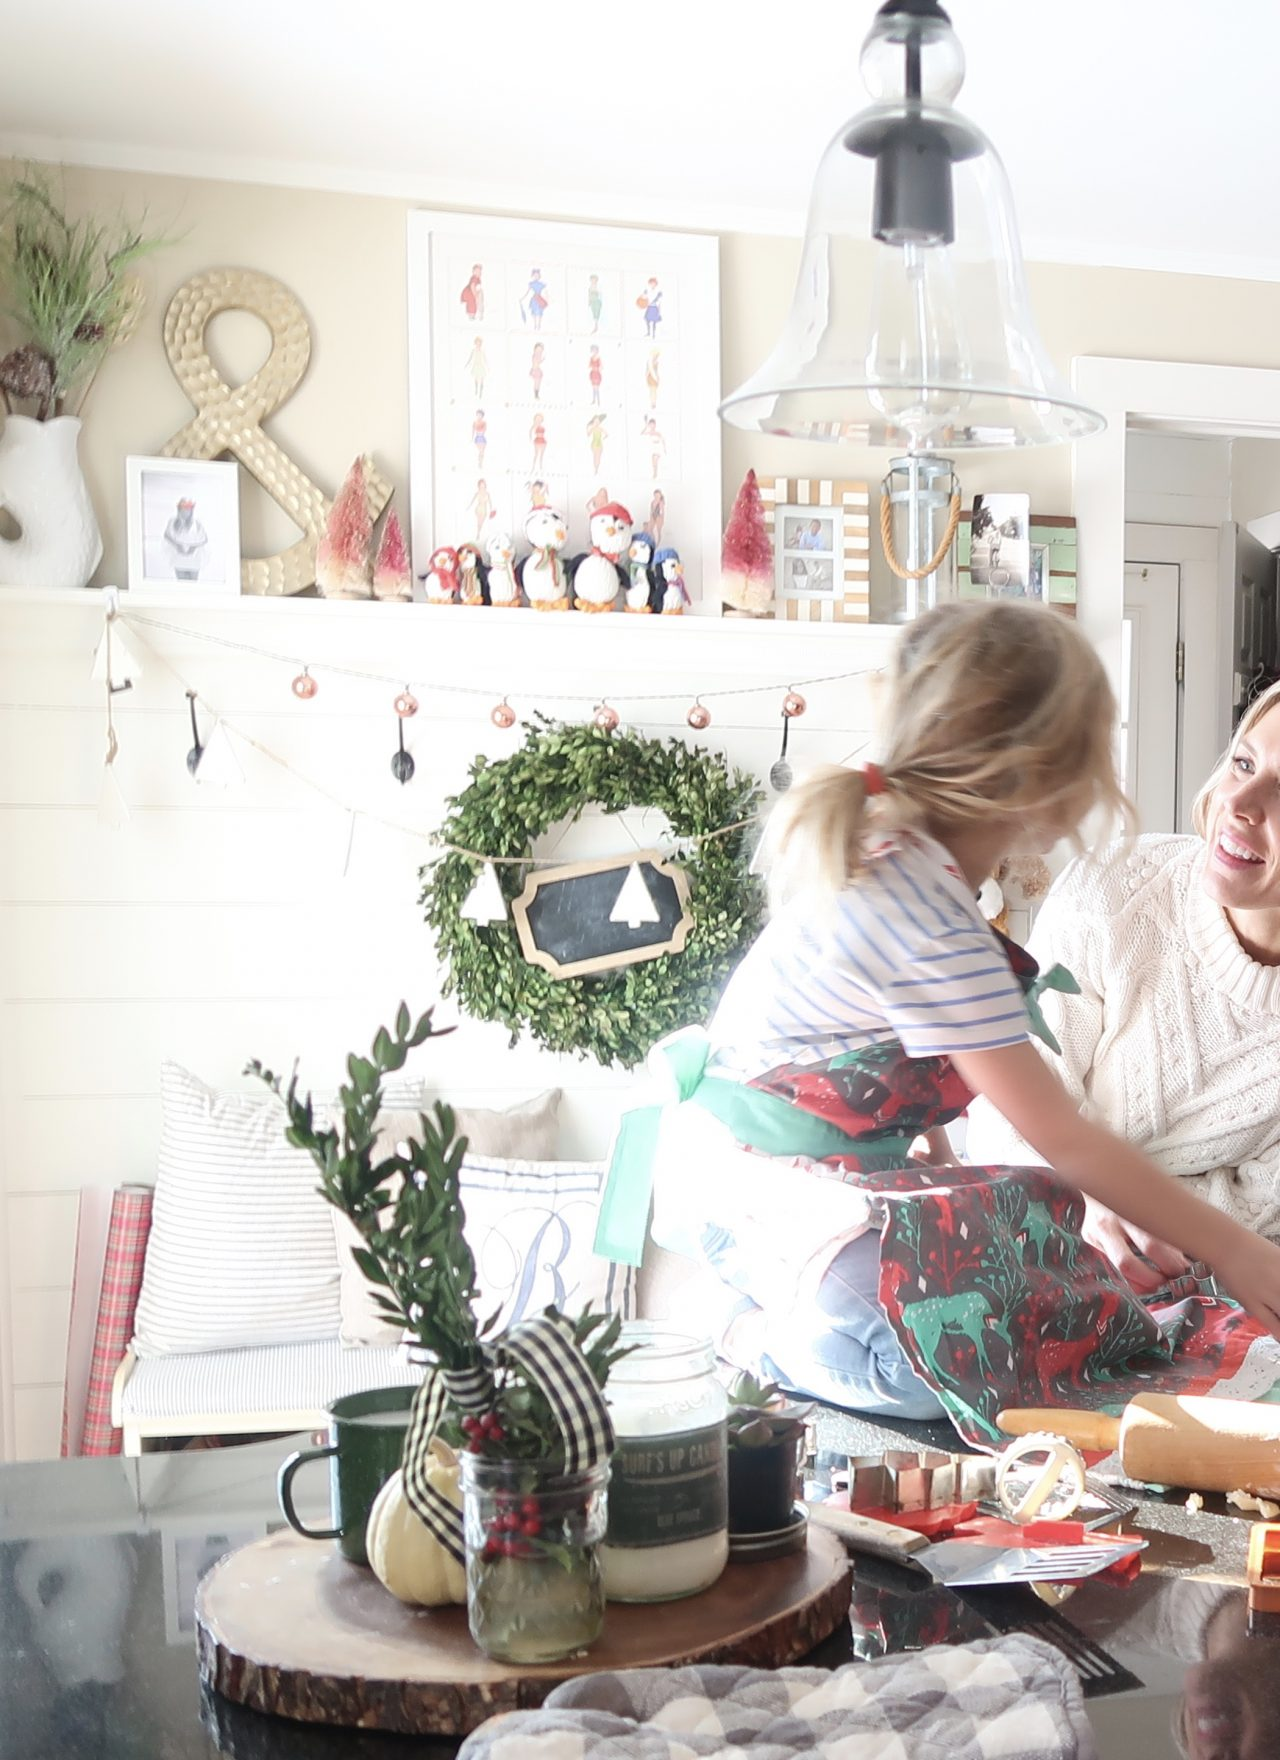 Bake Cookies Day | Christmas Traditions